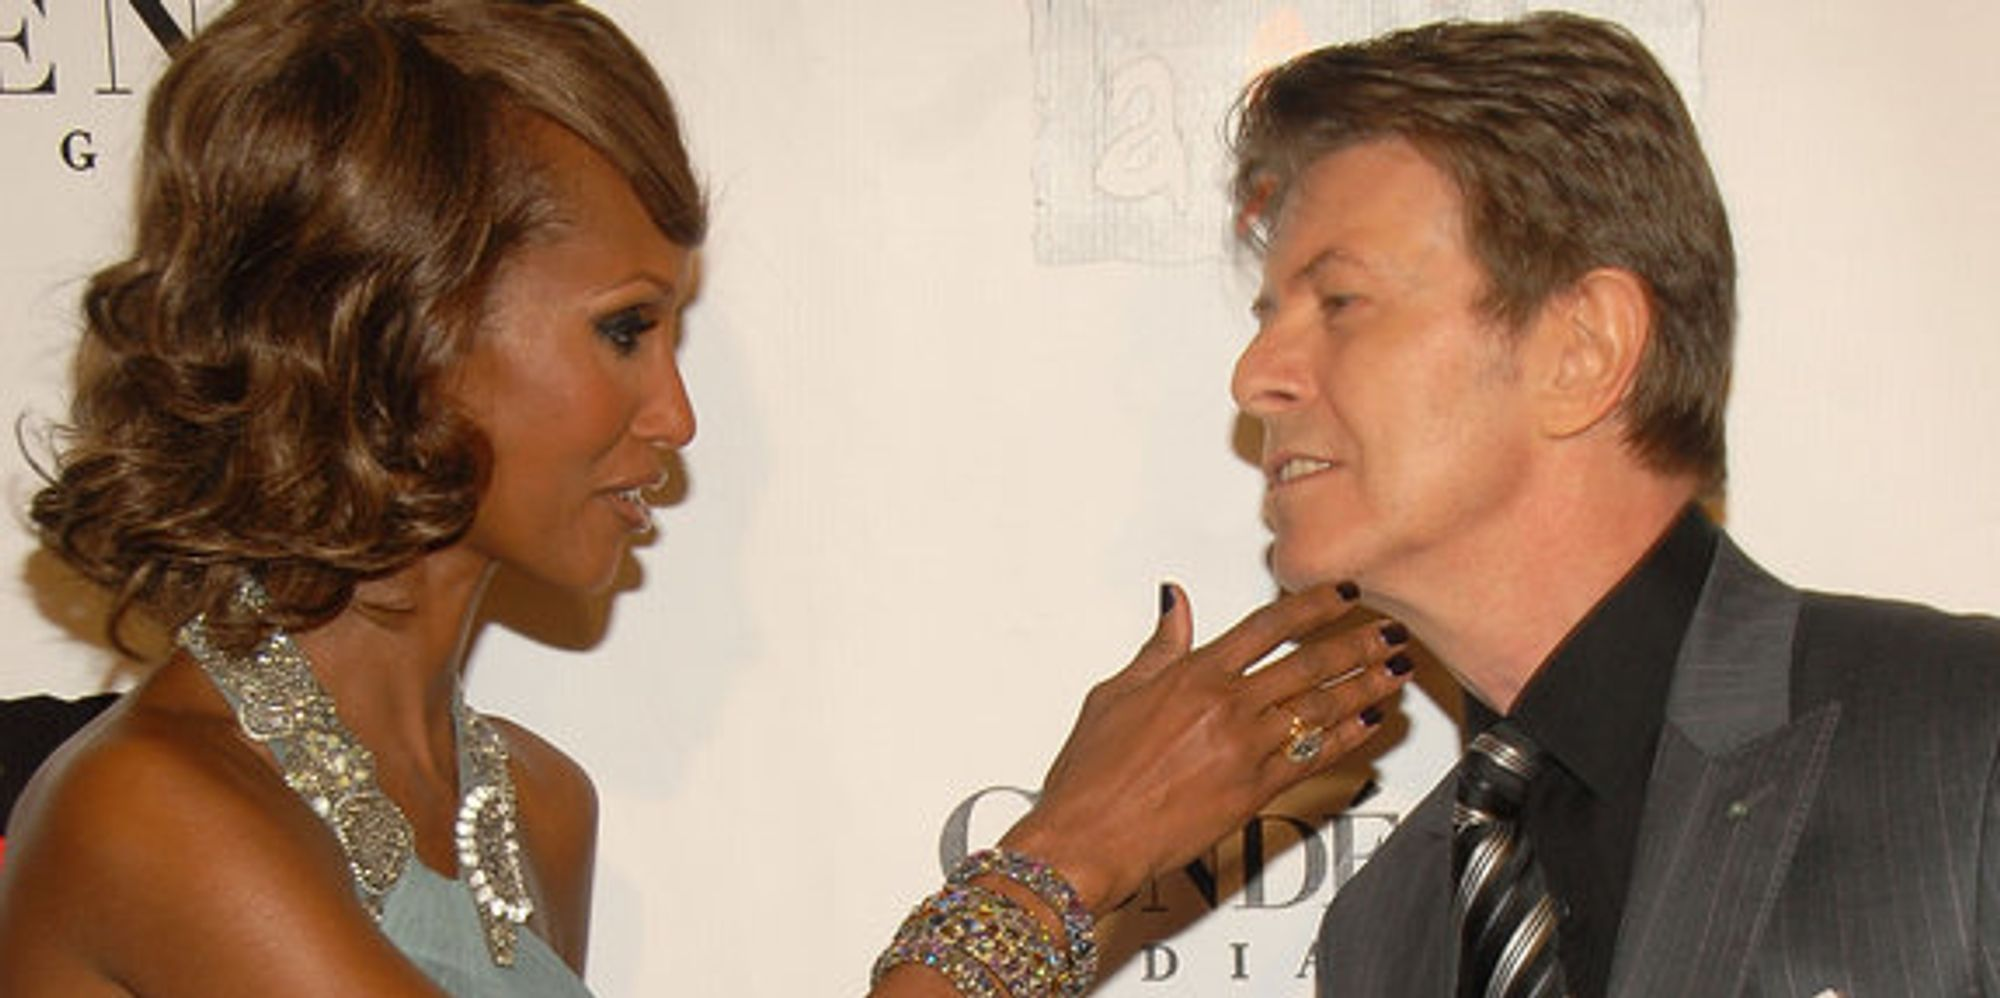 David Bowie And Iman: 13 Photos That Prove They Were The World's Most Fashionable Couple